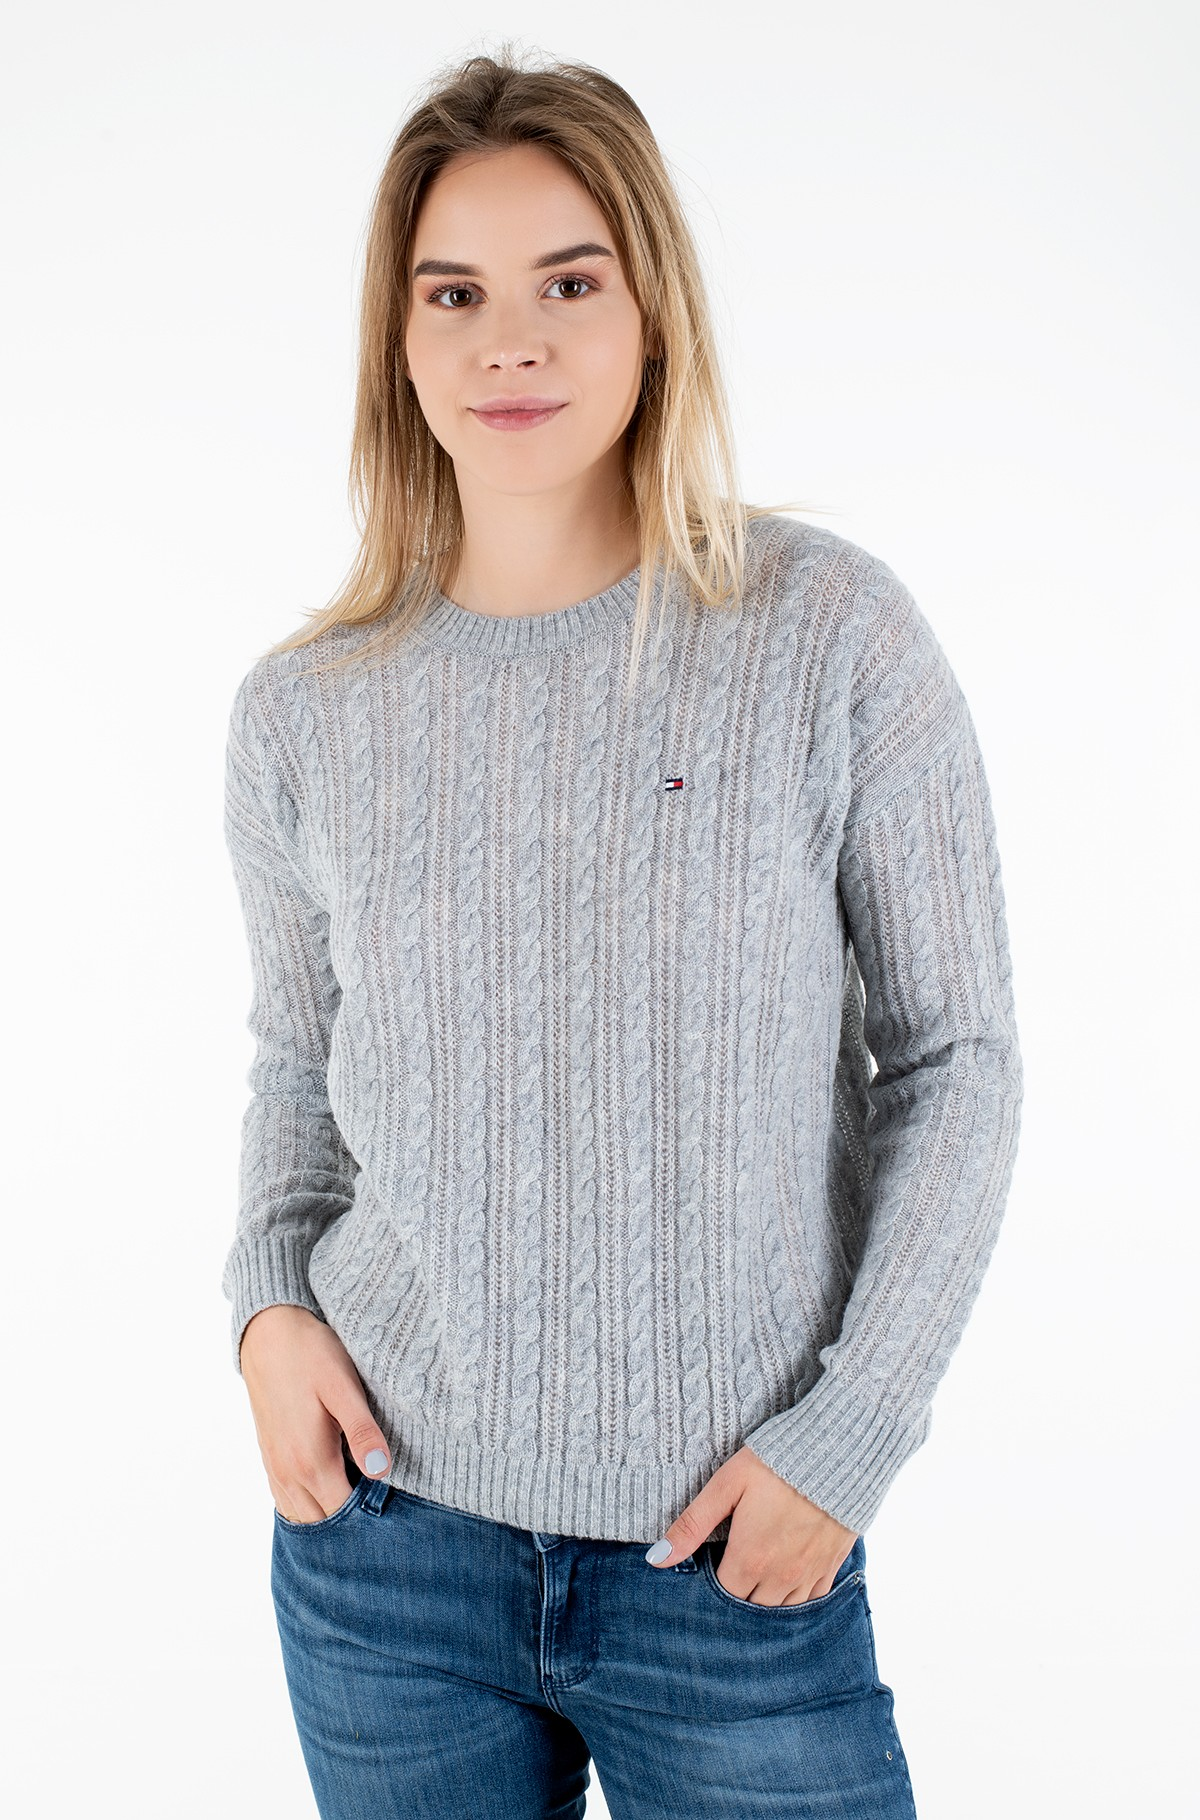 Kampsun SOFTWOOL CABLE C-NK SWEATER LS-full-1